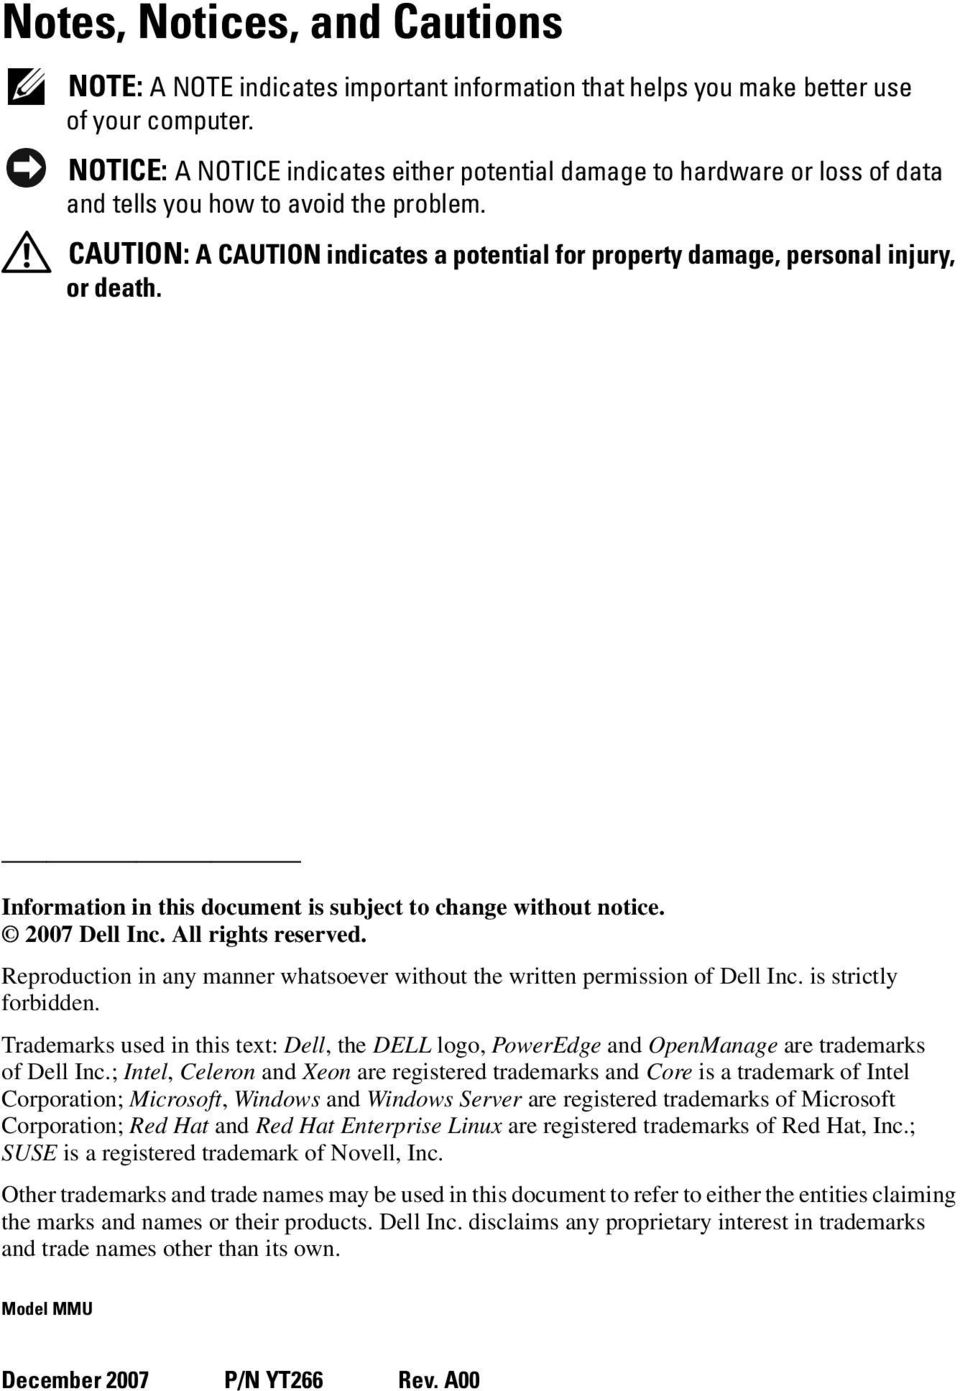 CAUTION: A CAUTION indicates a potential for property damage, personal injury, or death. Information in this document is subject to change without notice. 2007 Dell Inc. All rights reserved.